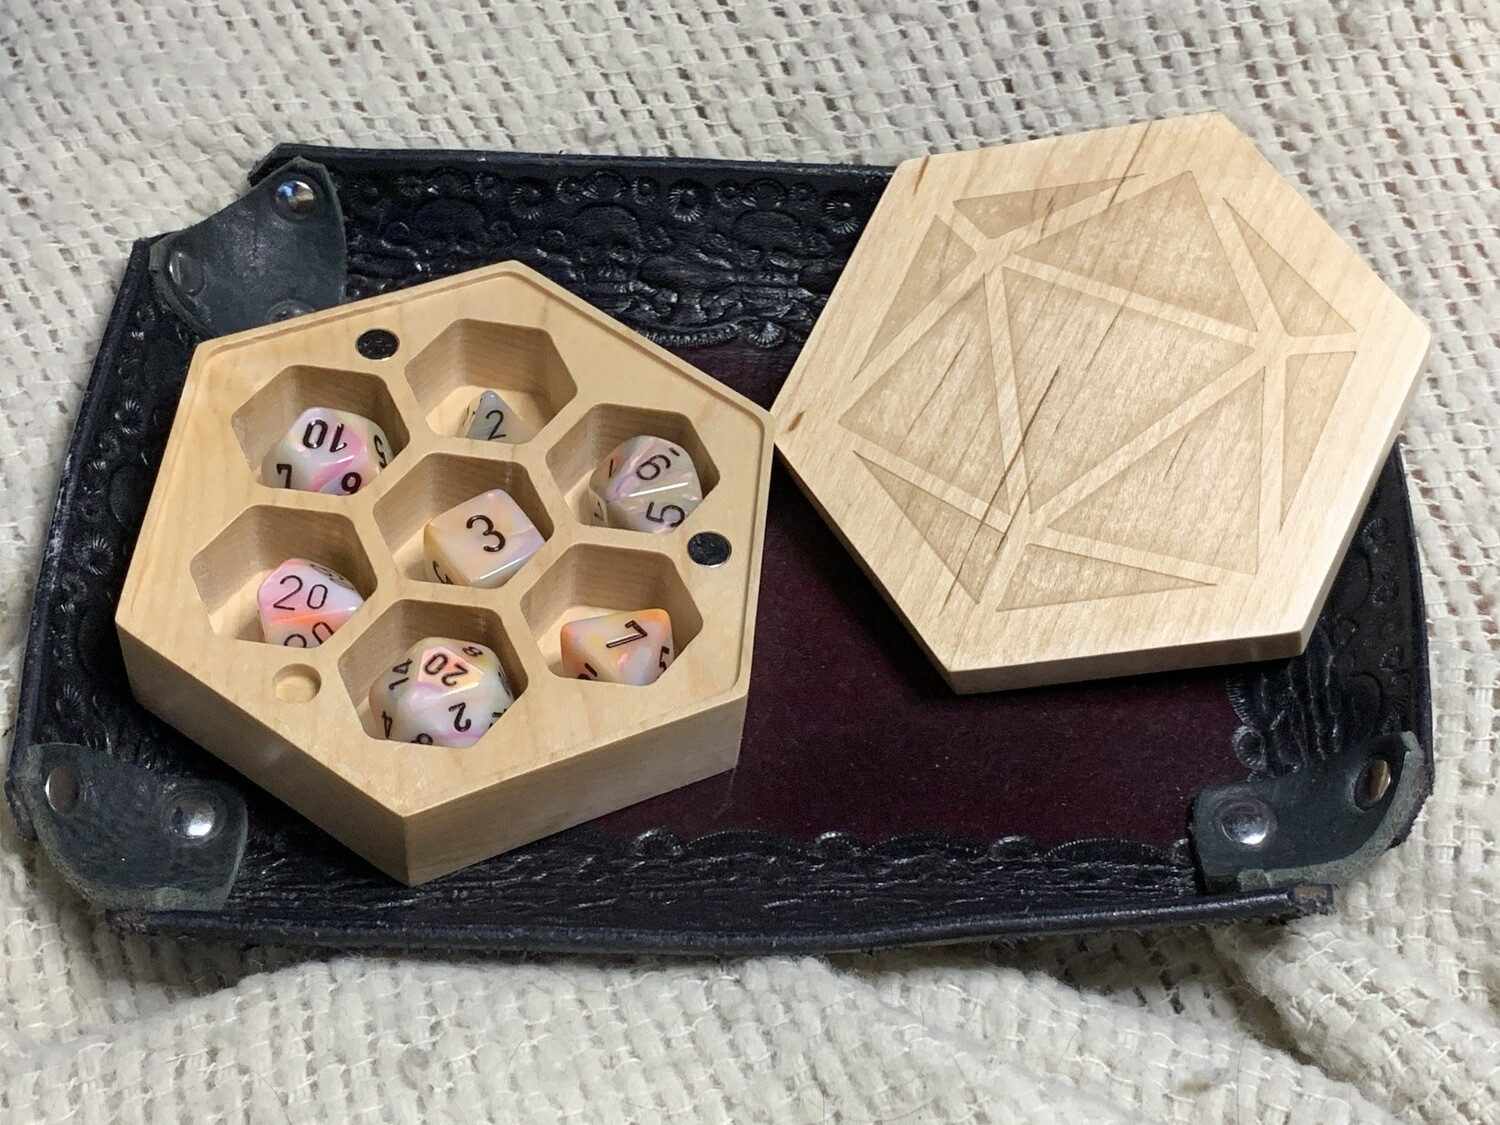 Maple Wood Hexagon Dice Case Polyhedral Gaming RPG Role Play - Maple Wood